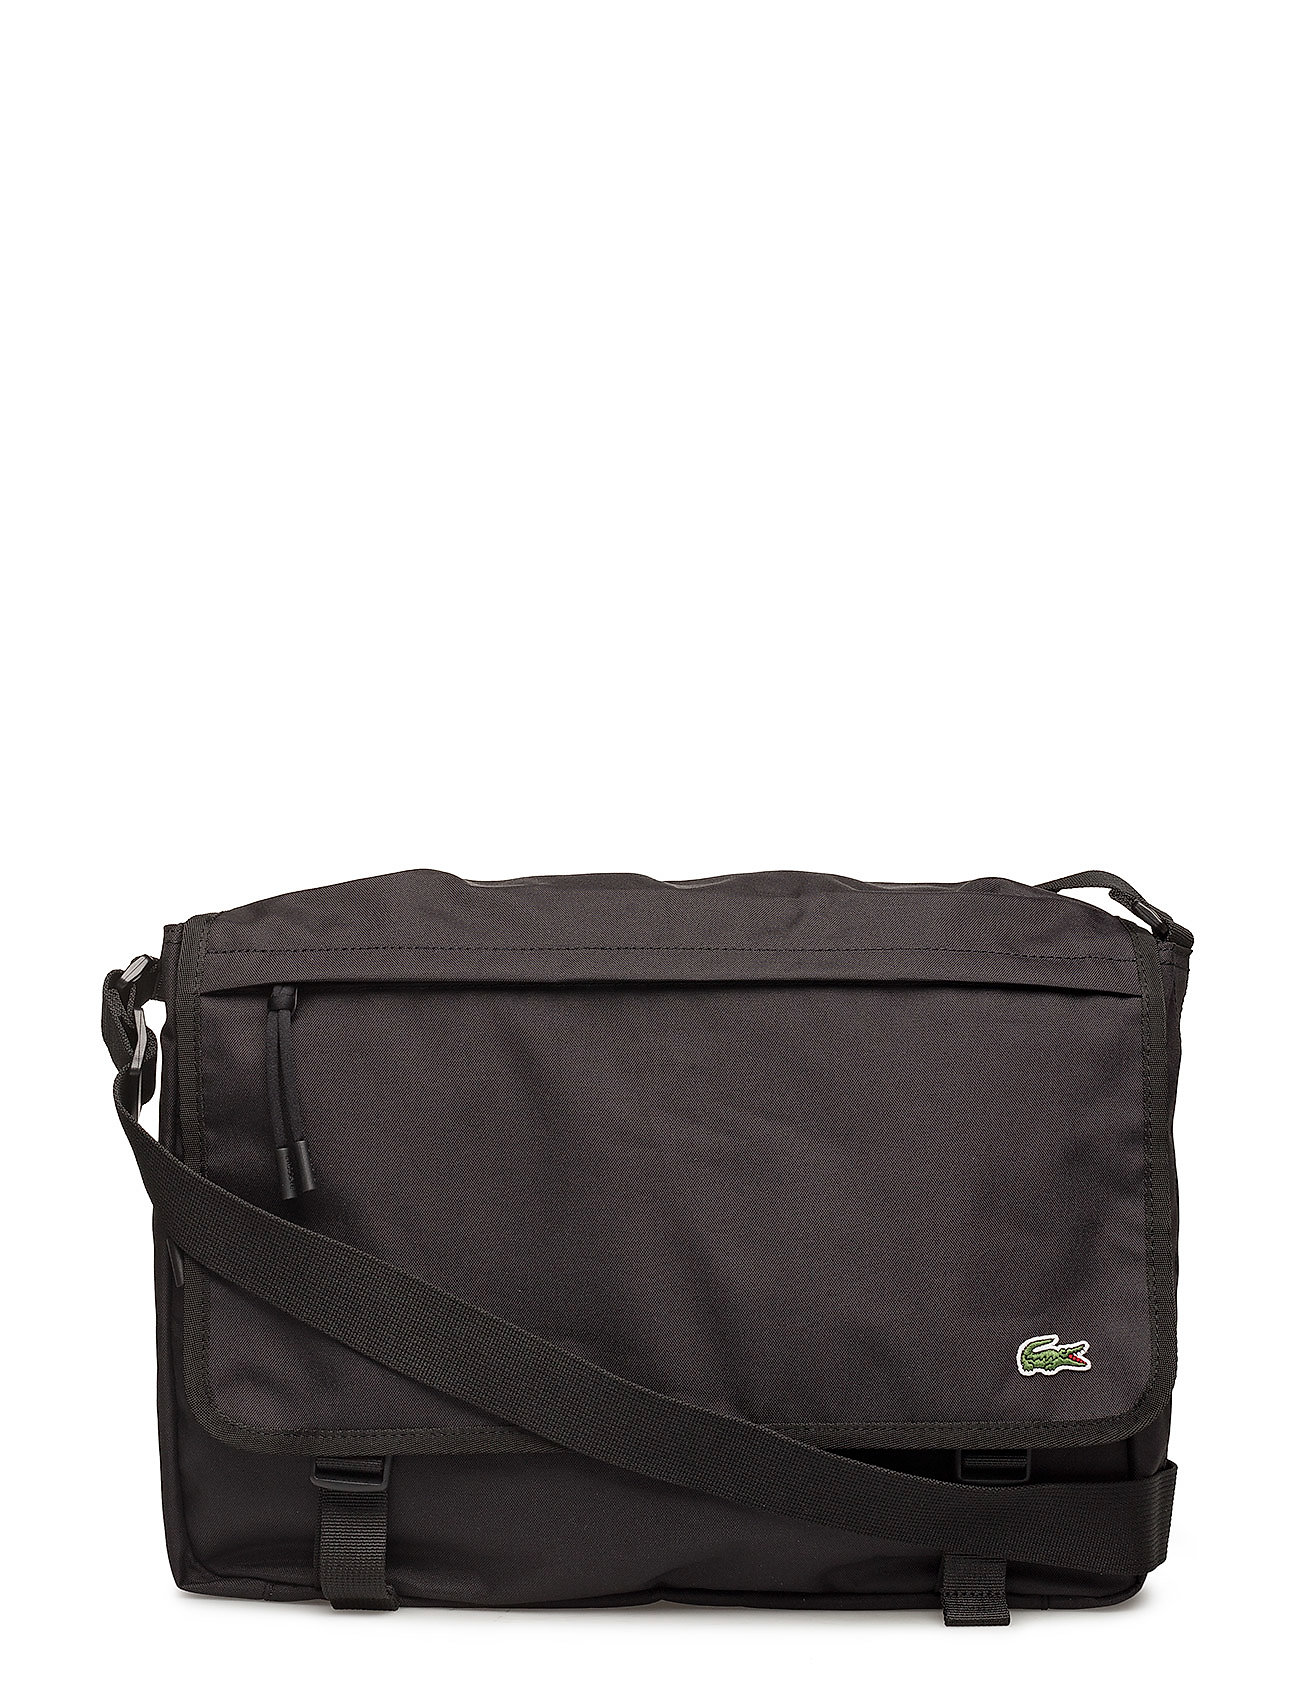 Leather Goods Luggage (991) (71.50 €) - Lacoste Sport - Bags   Boozt.com a8daabbd51